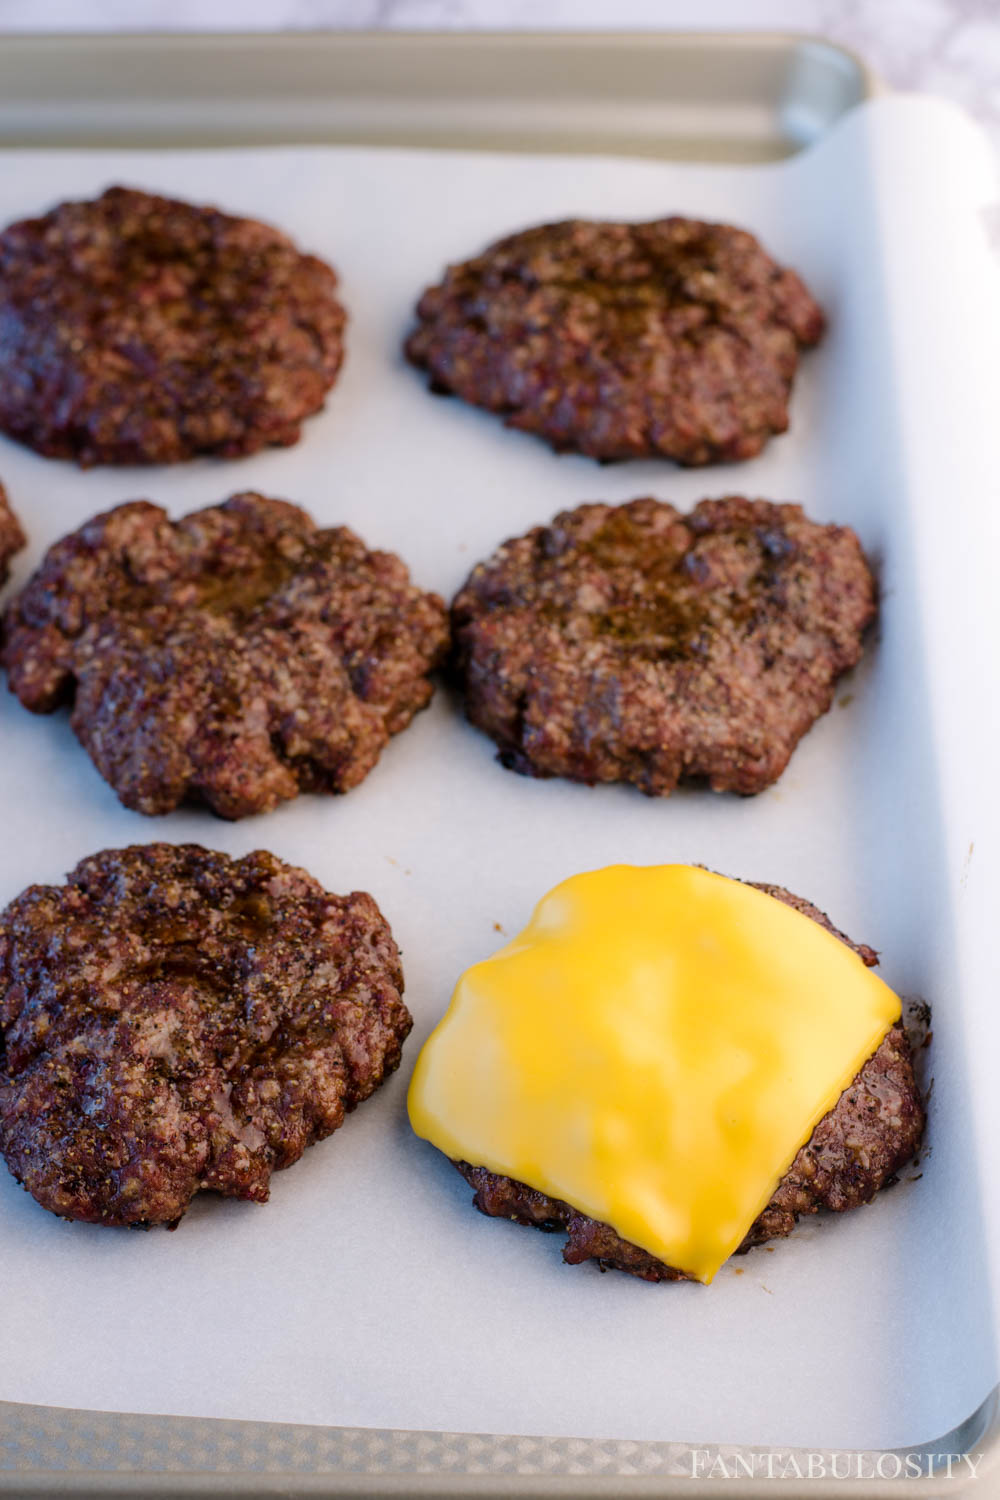 Add cheese to smoked burgers if desired